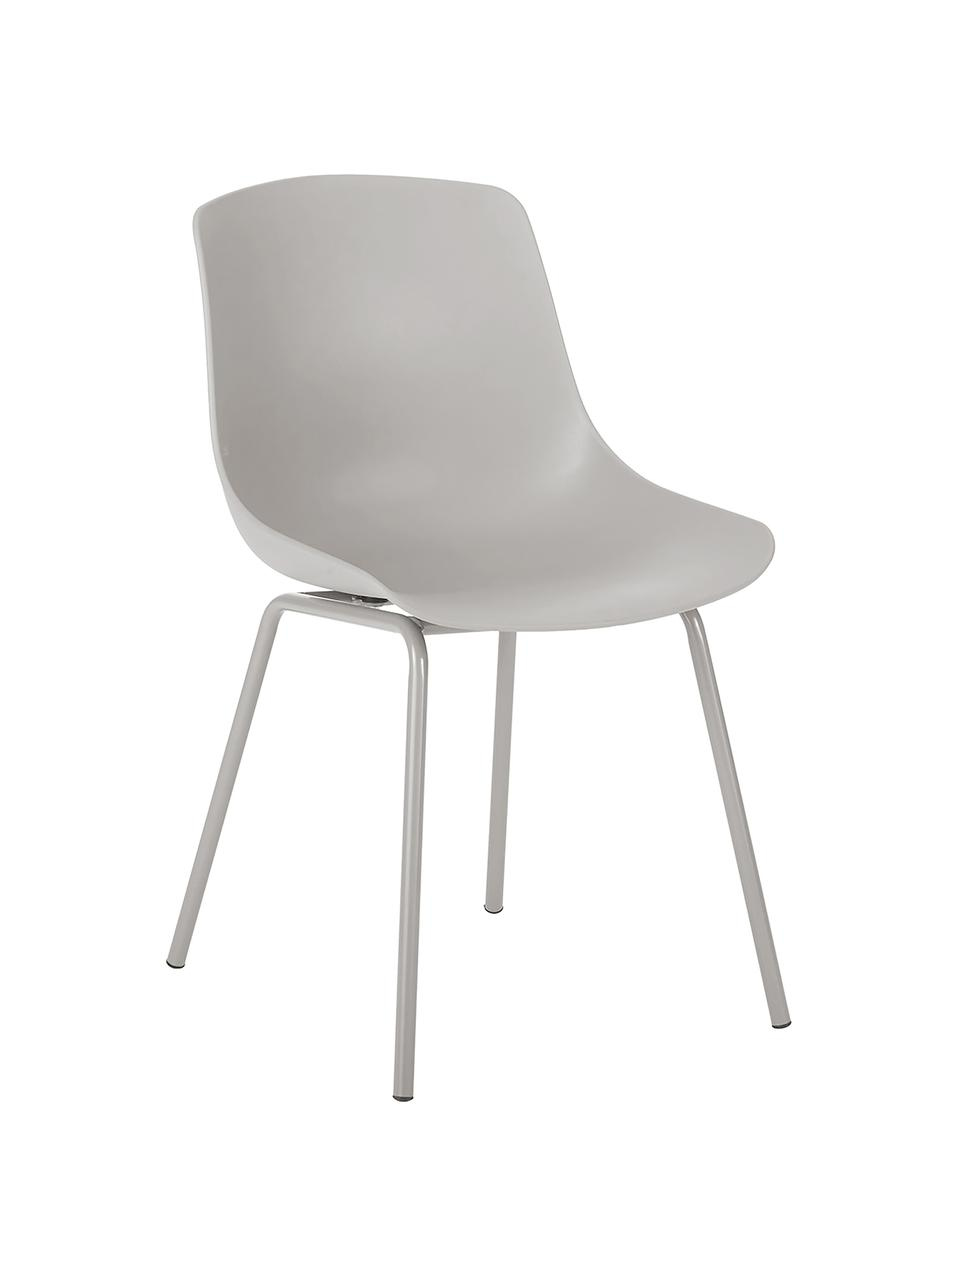 Chaise moderne Joe, 2pièces, Taupe